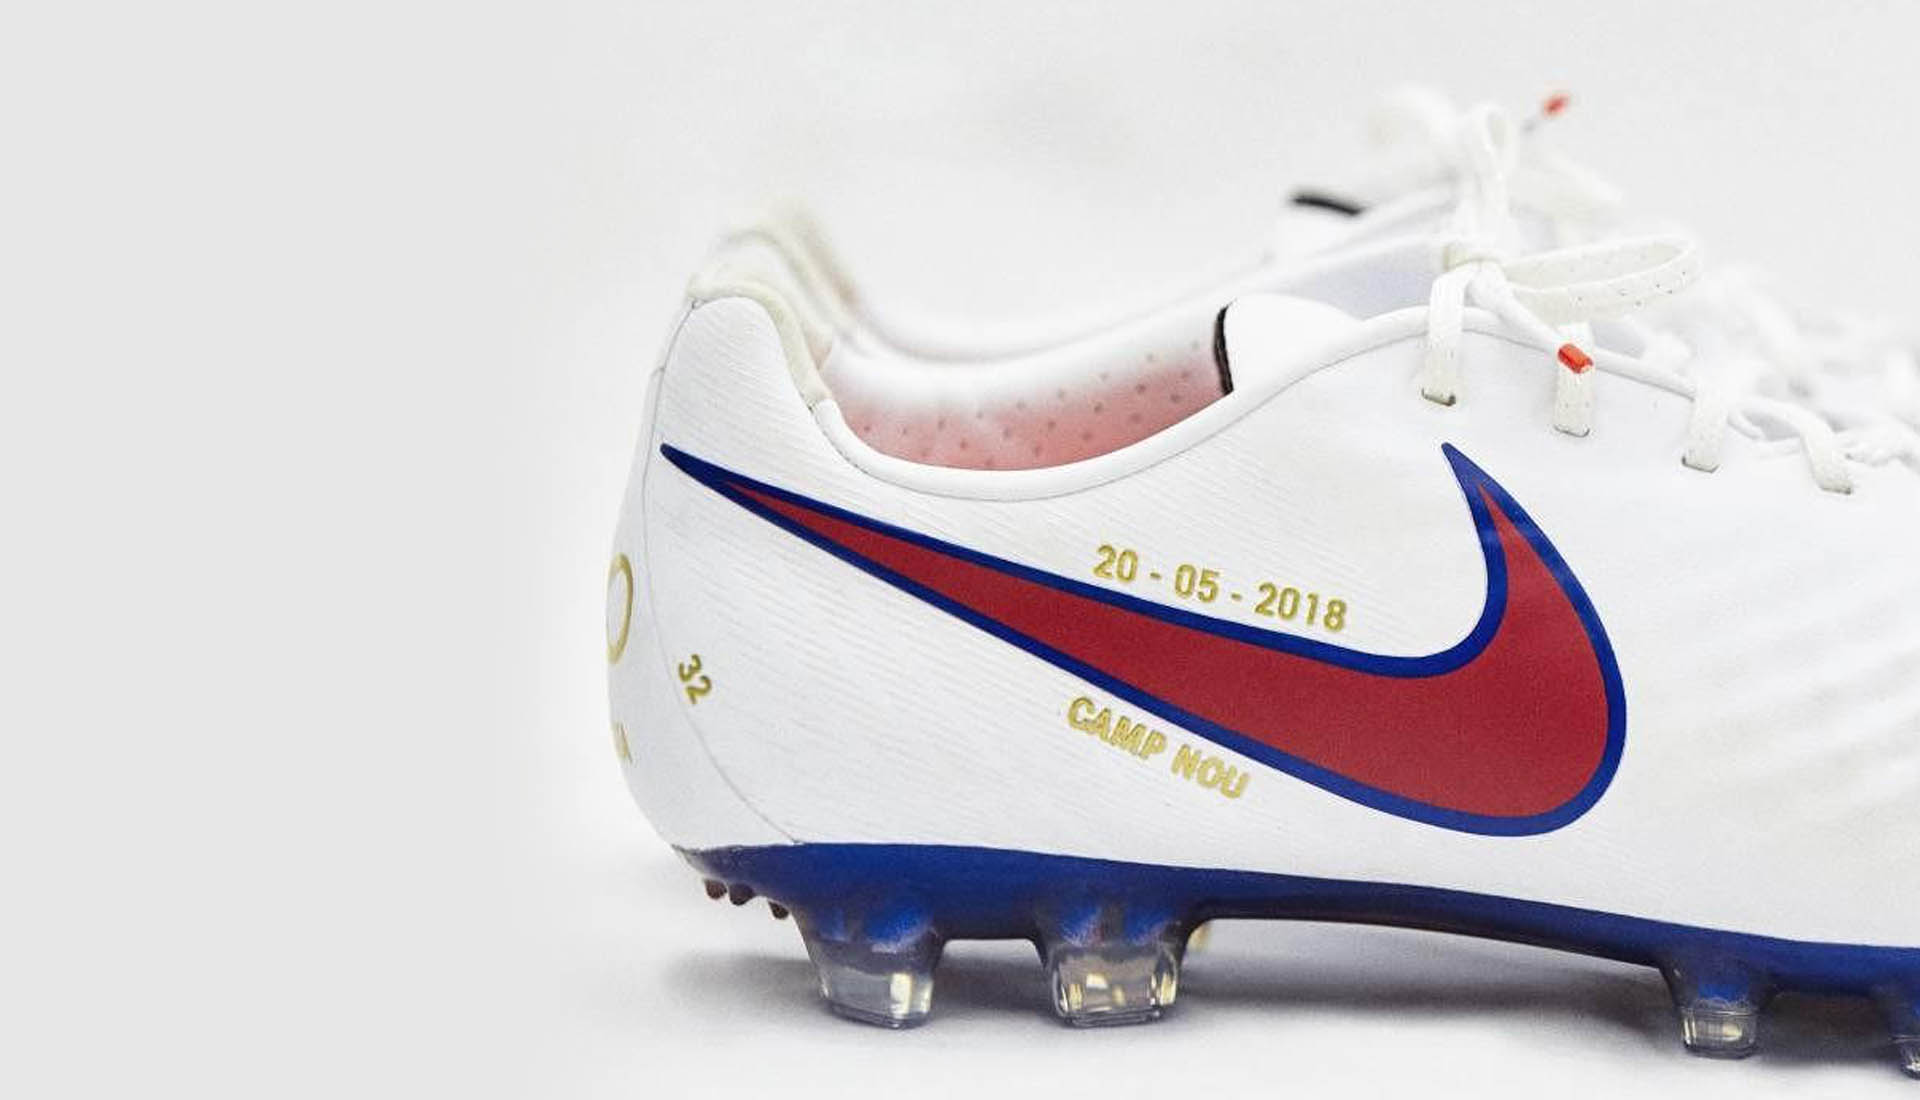 e92bf605003 Iniesta Receives Special Edition Nike Magista For Final Game ...